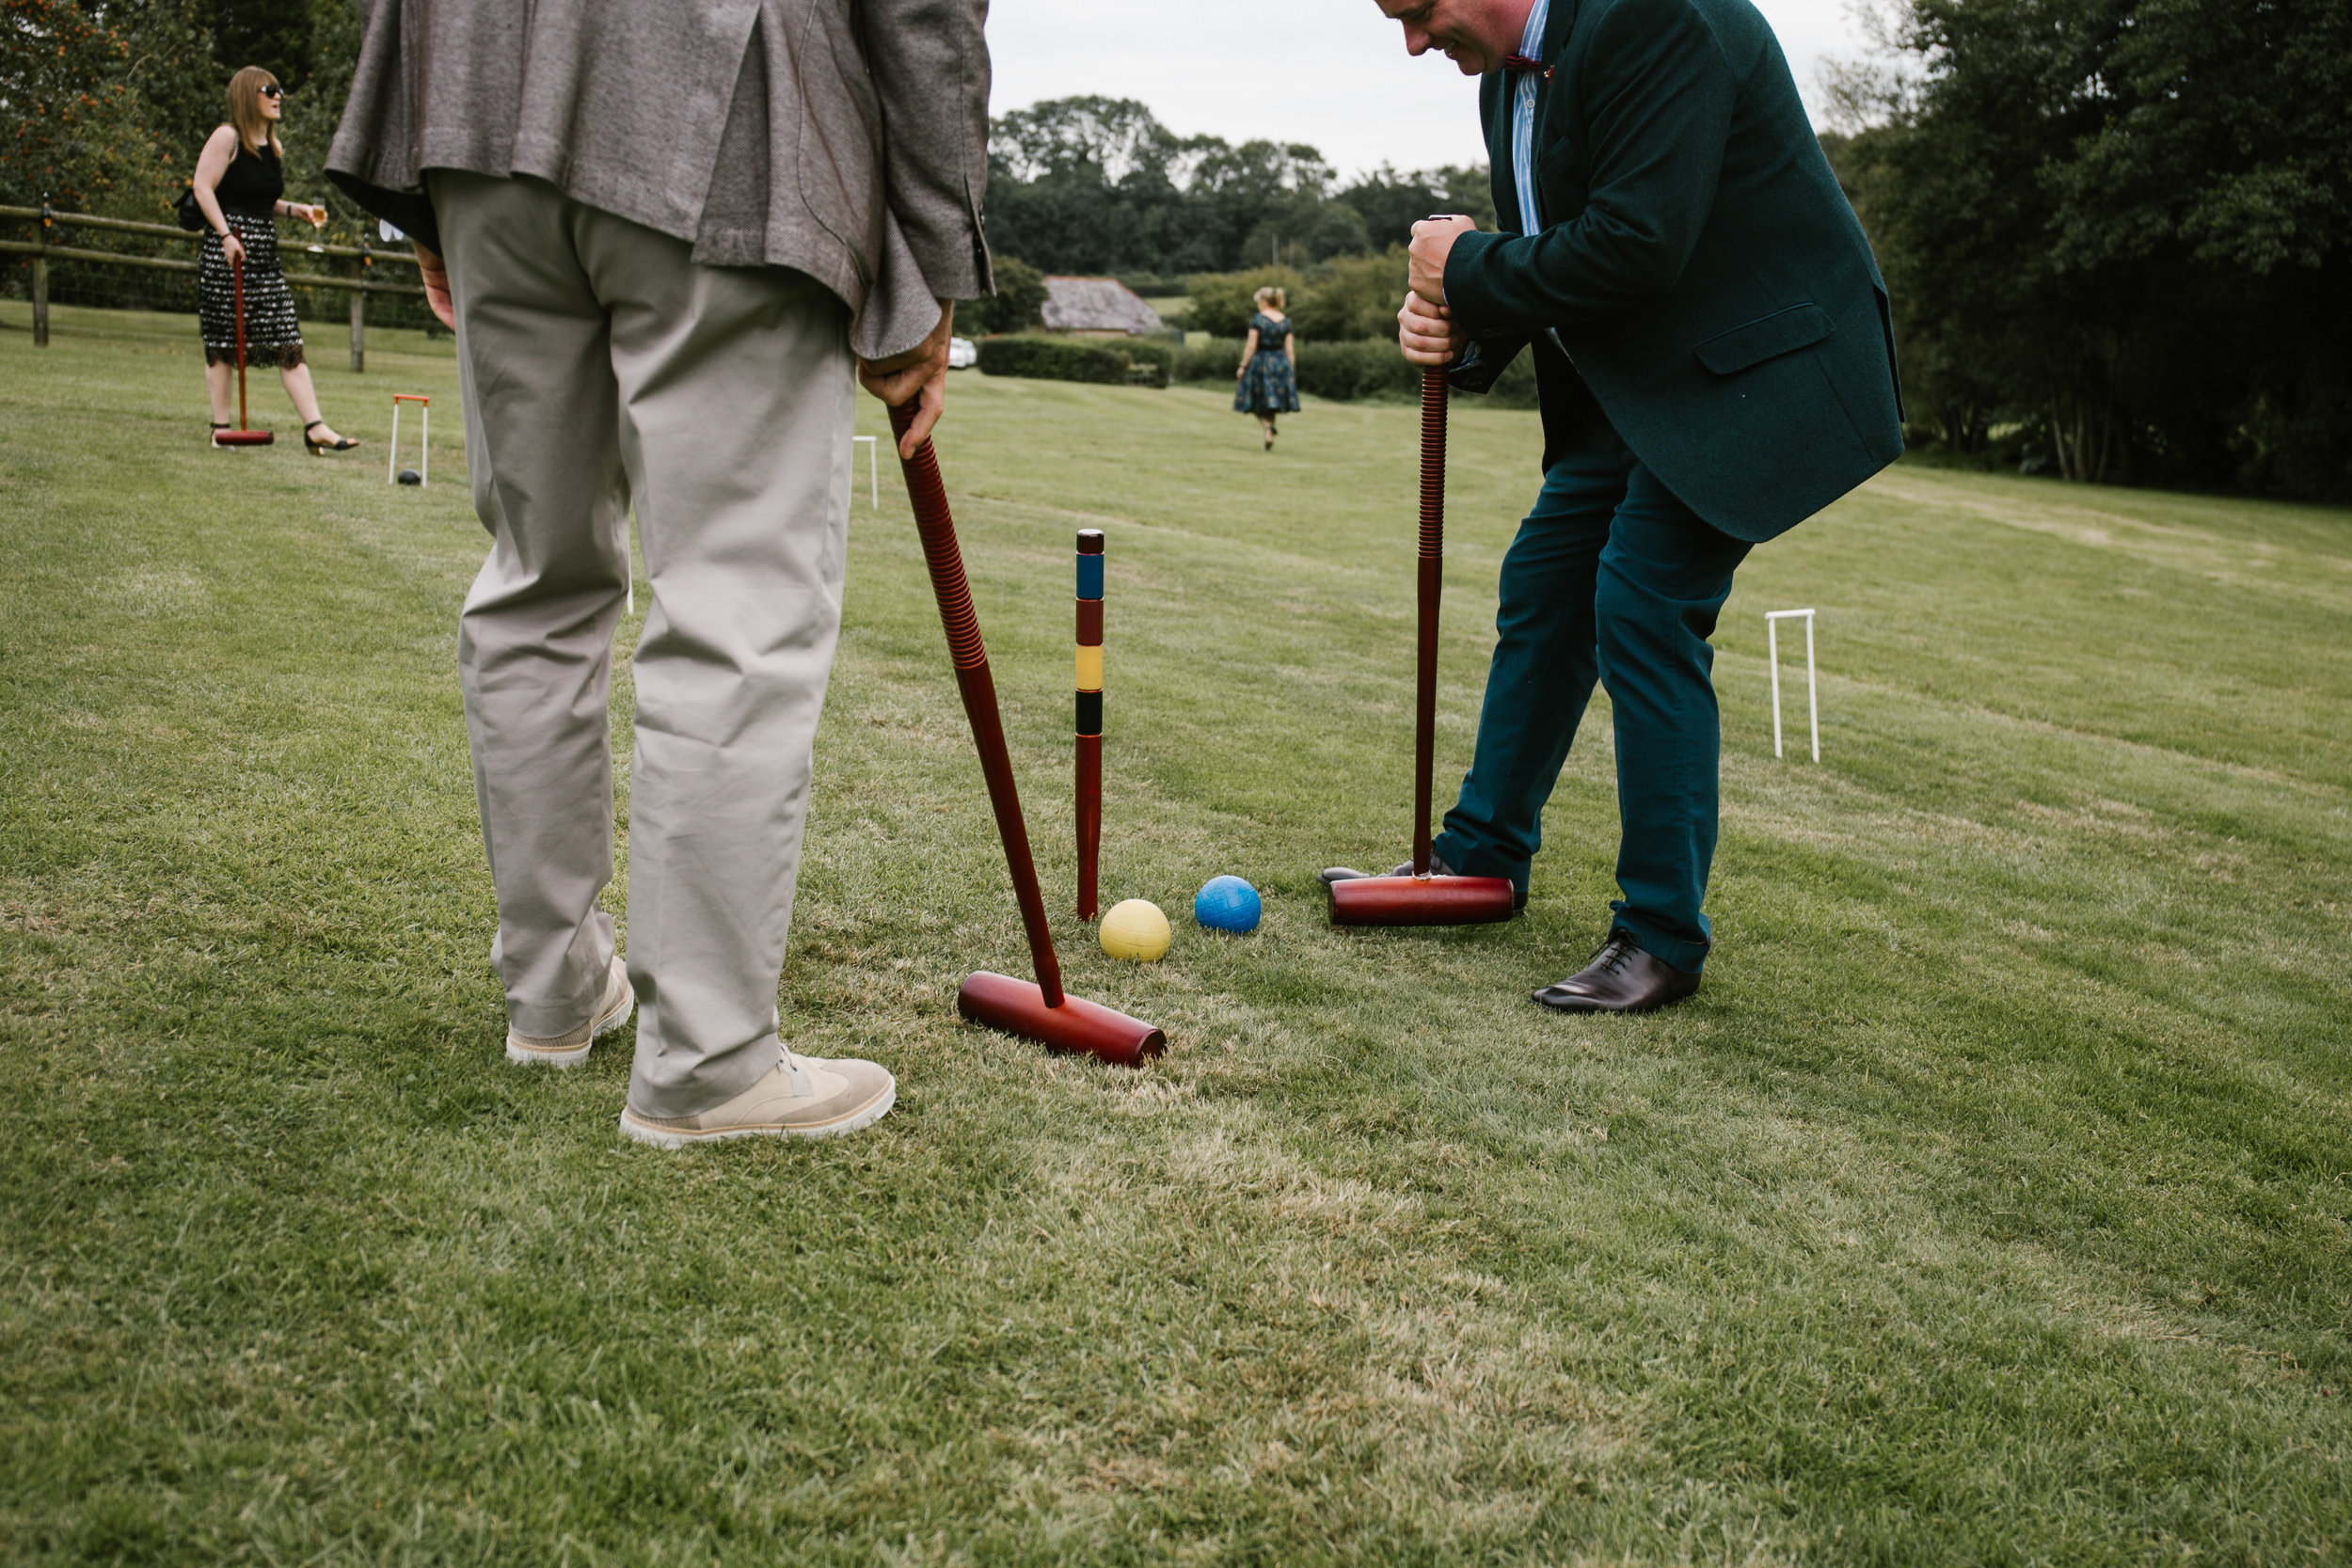 men playing lawn games at outdoor wedding